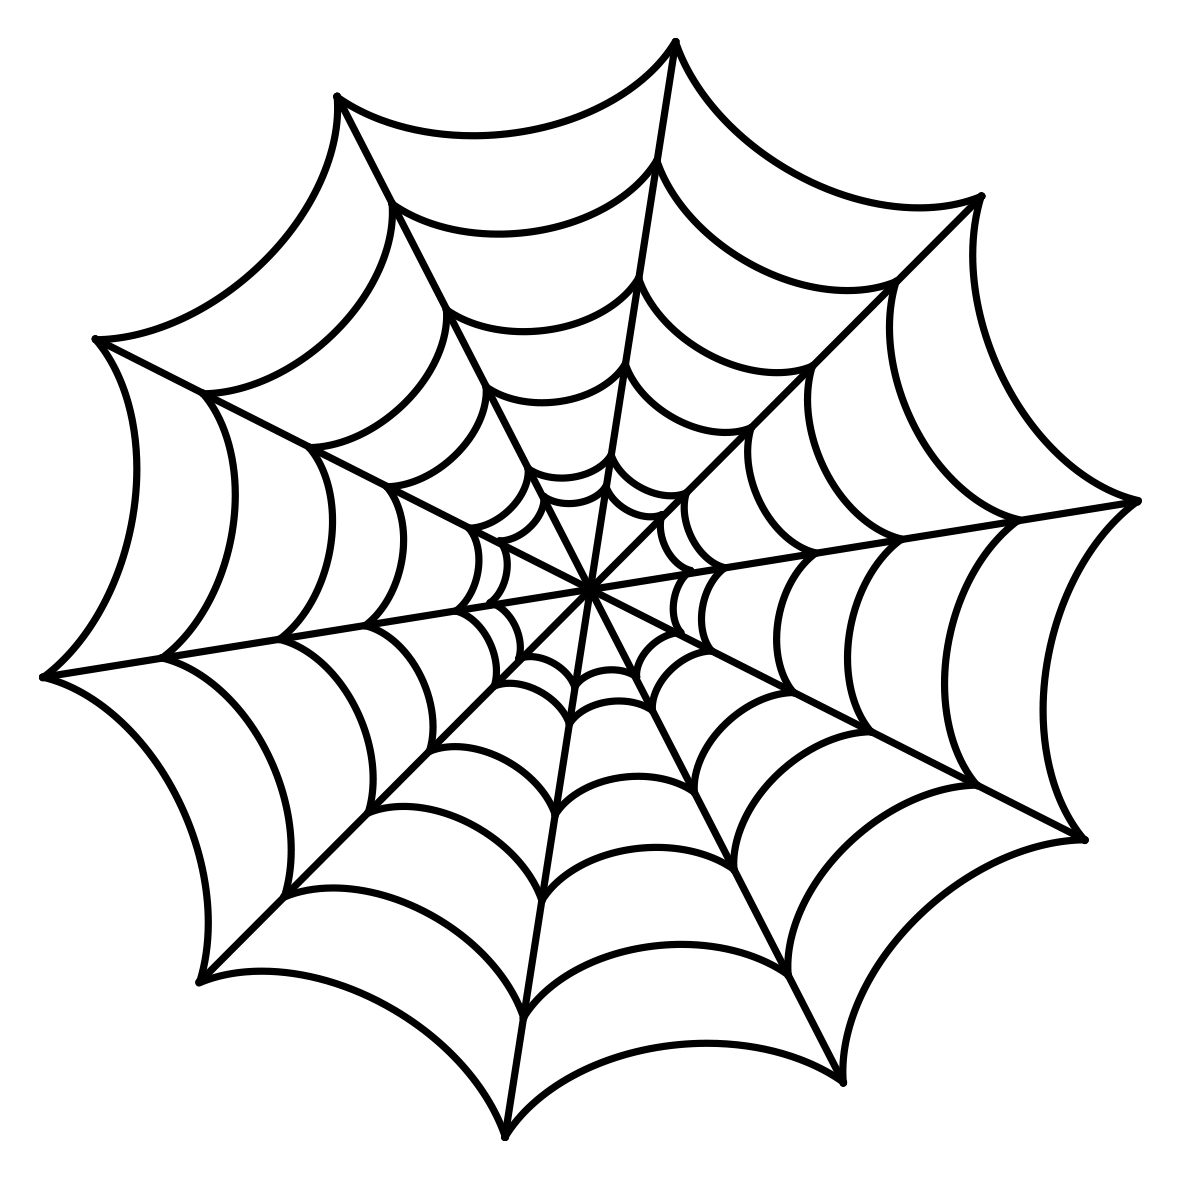 Web Coloring Pages to download and print for free